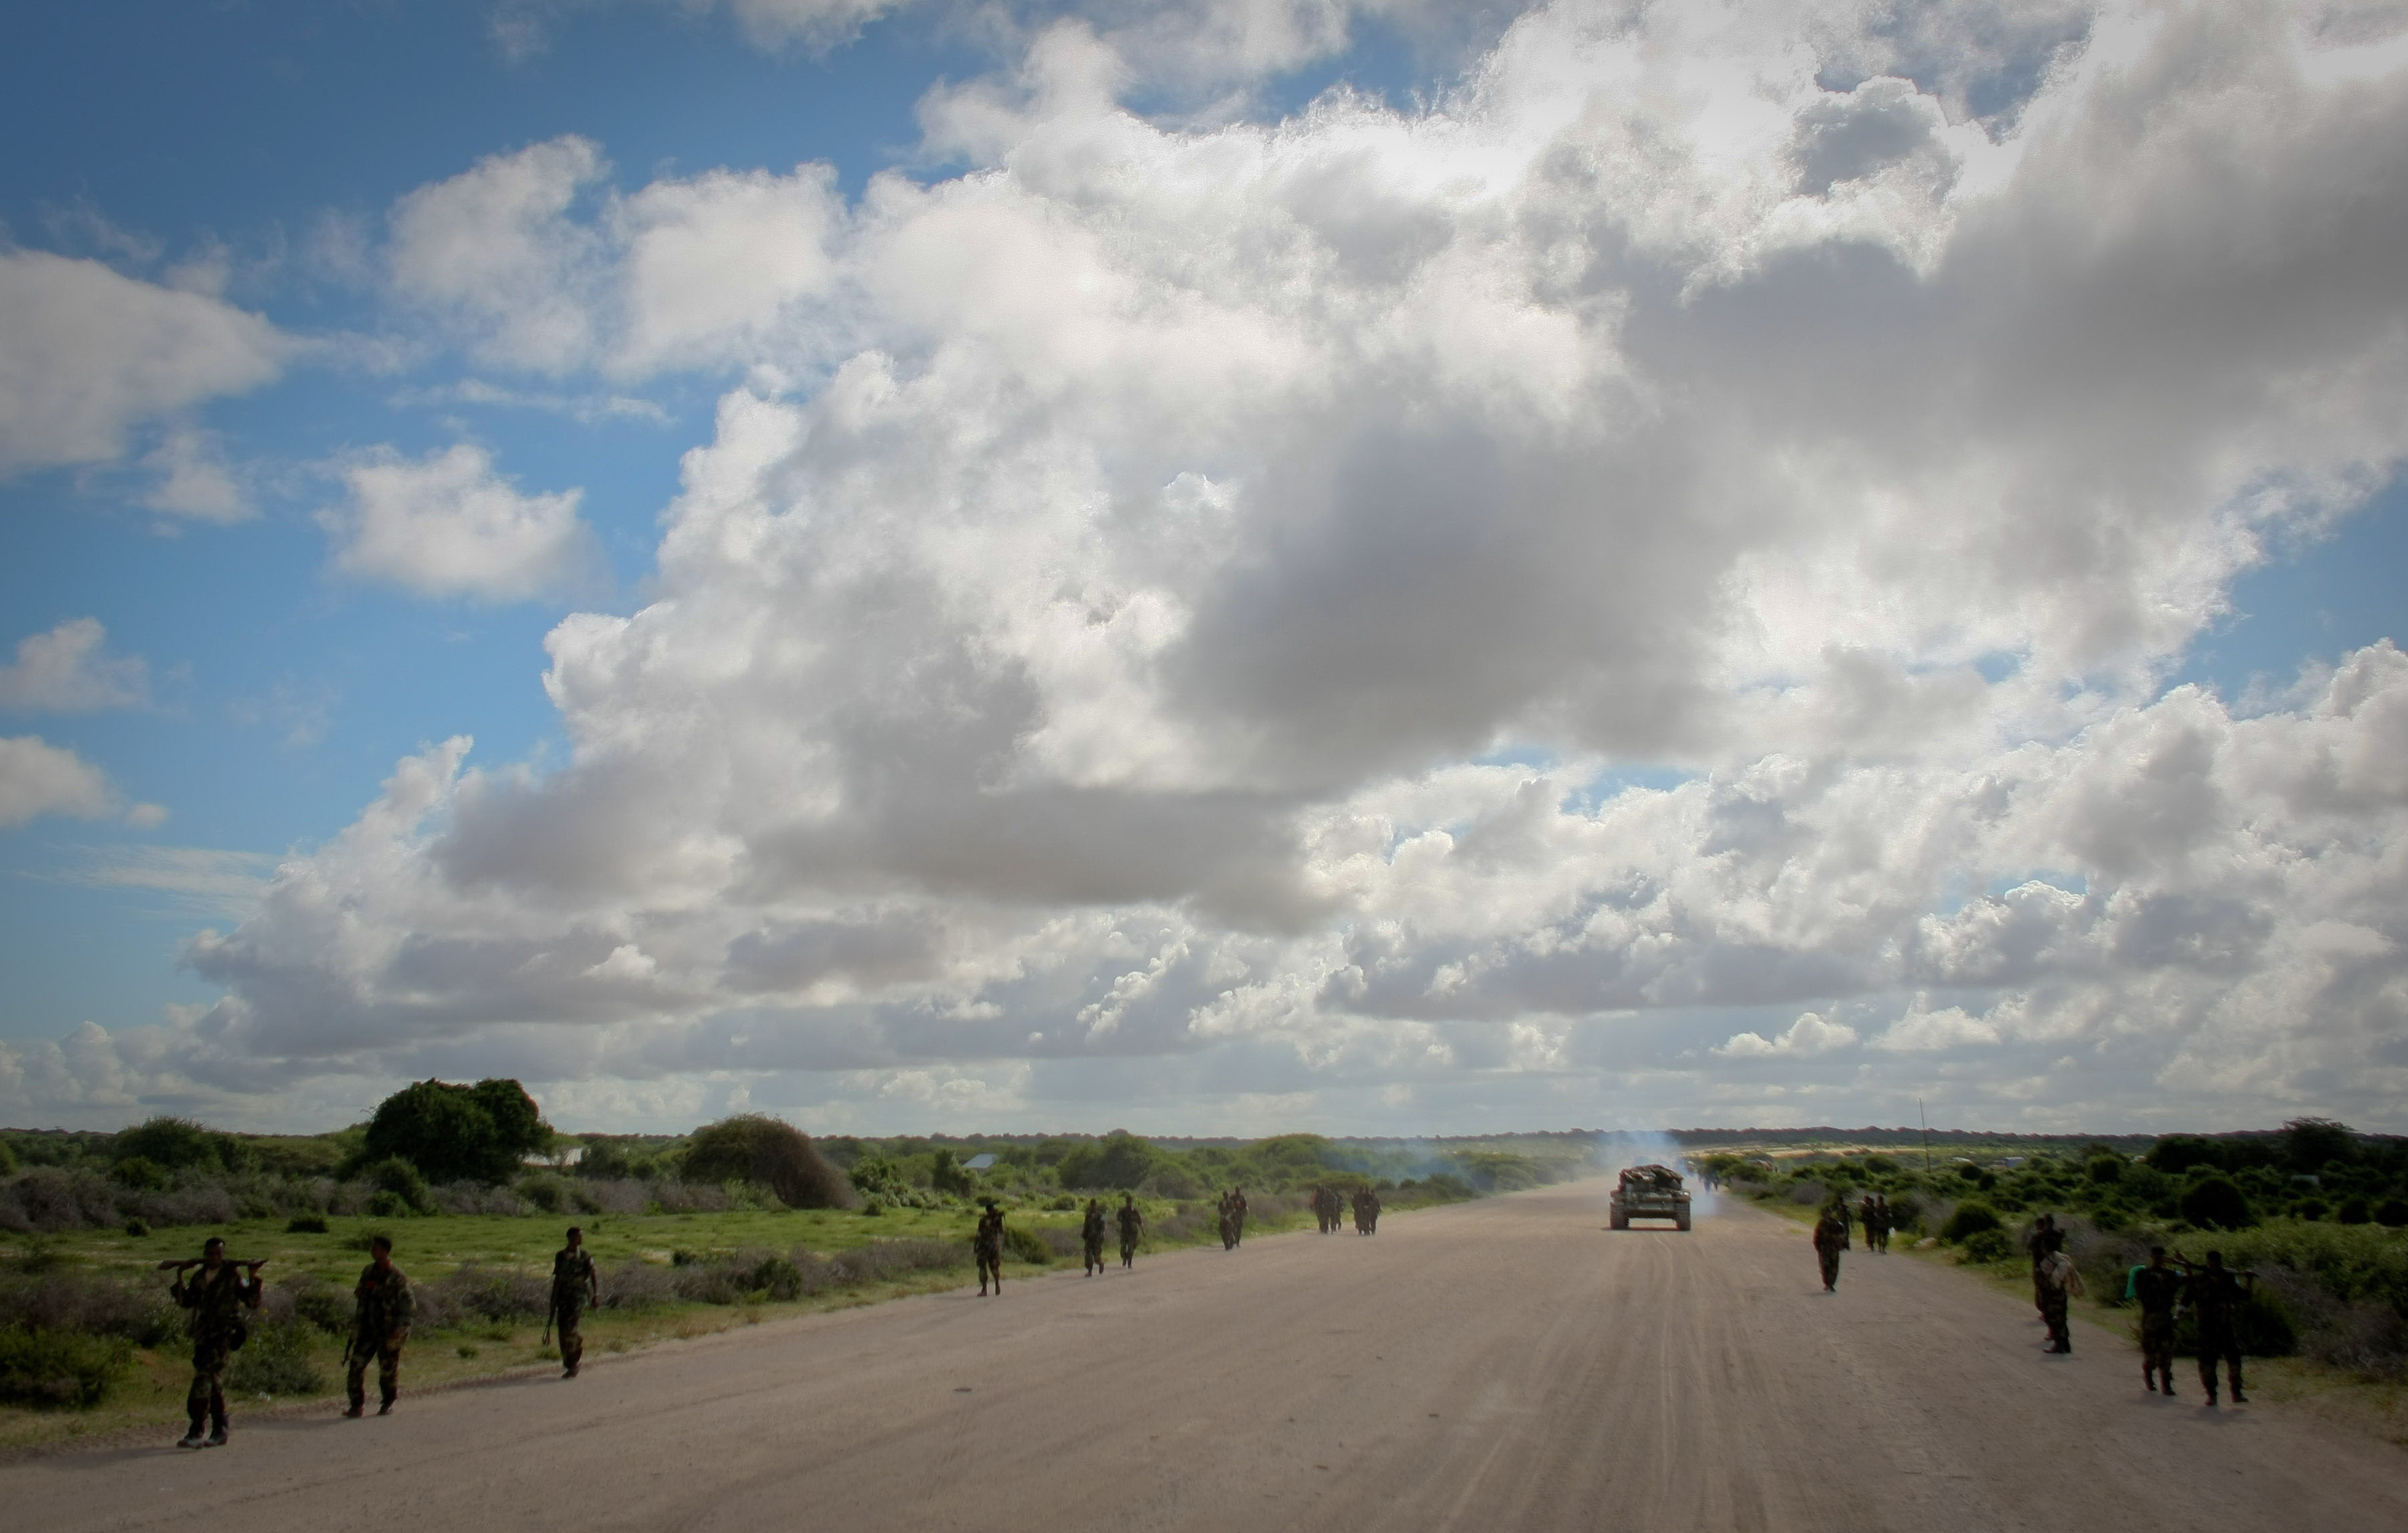 AMISOM & Somali National Army operation to capture Afgoye Corridor Day #1 07, Security, Outdoor, Sky, Somali, HQ Photo